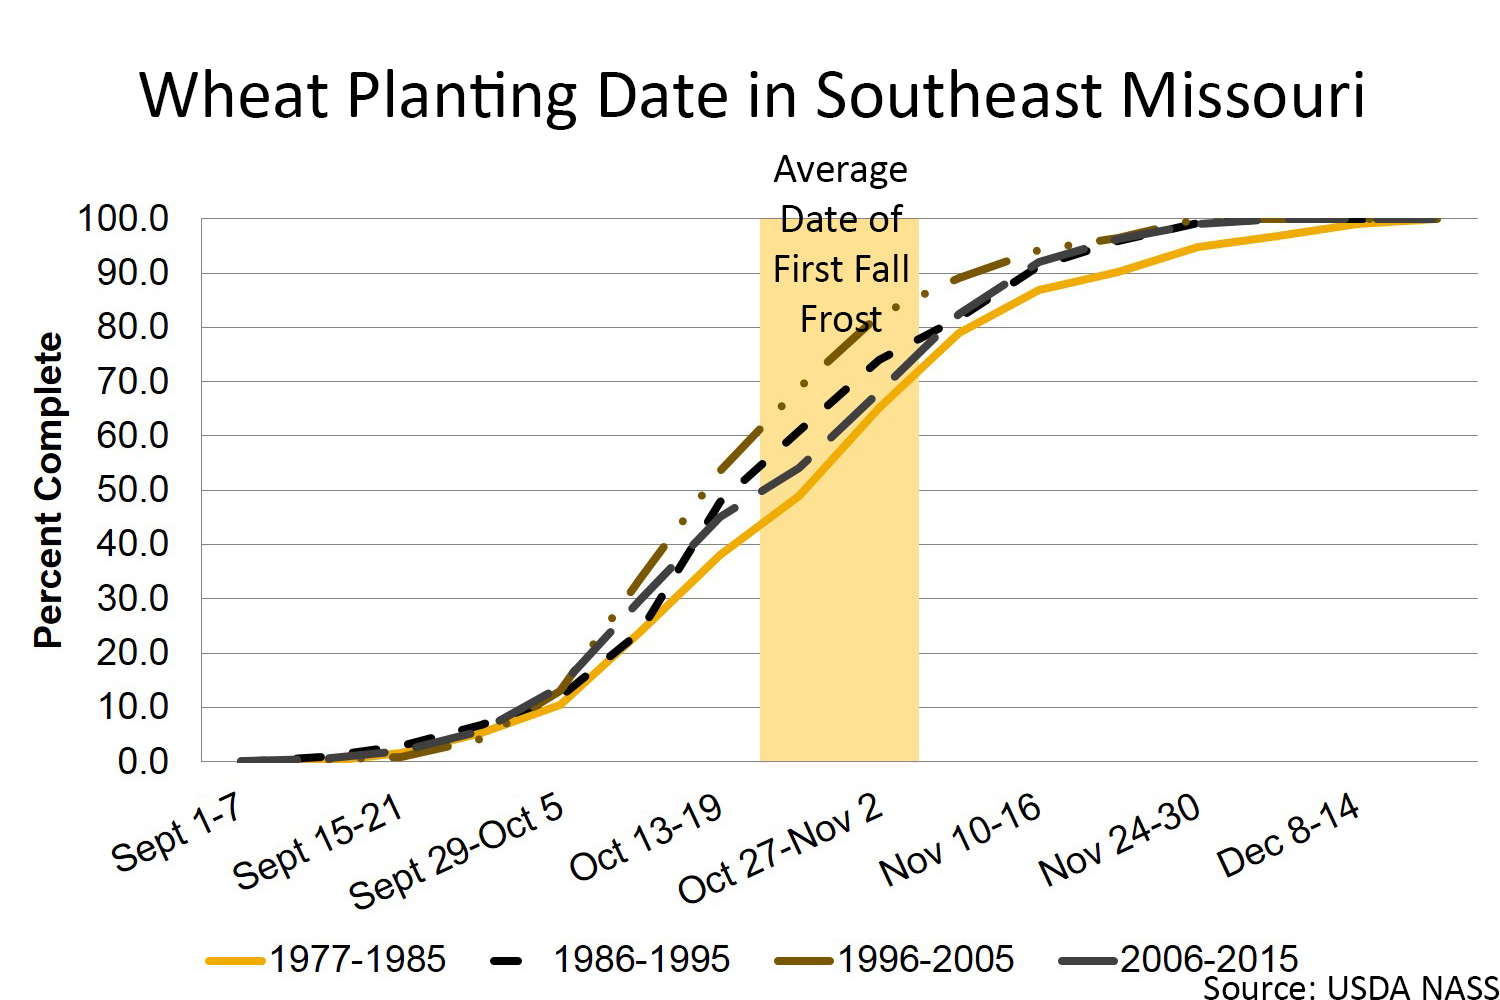 Wheat planting date in southeast Missouri chart